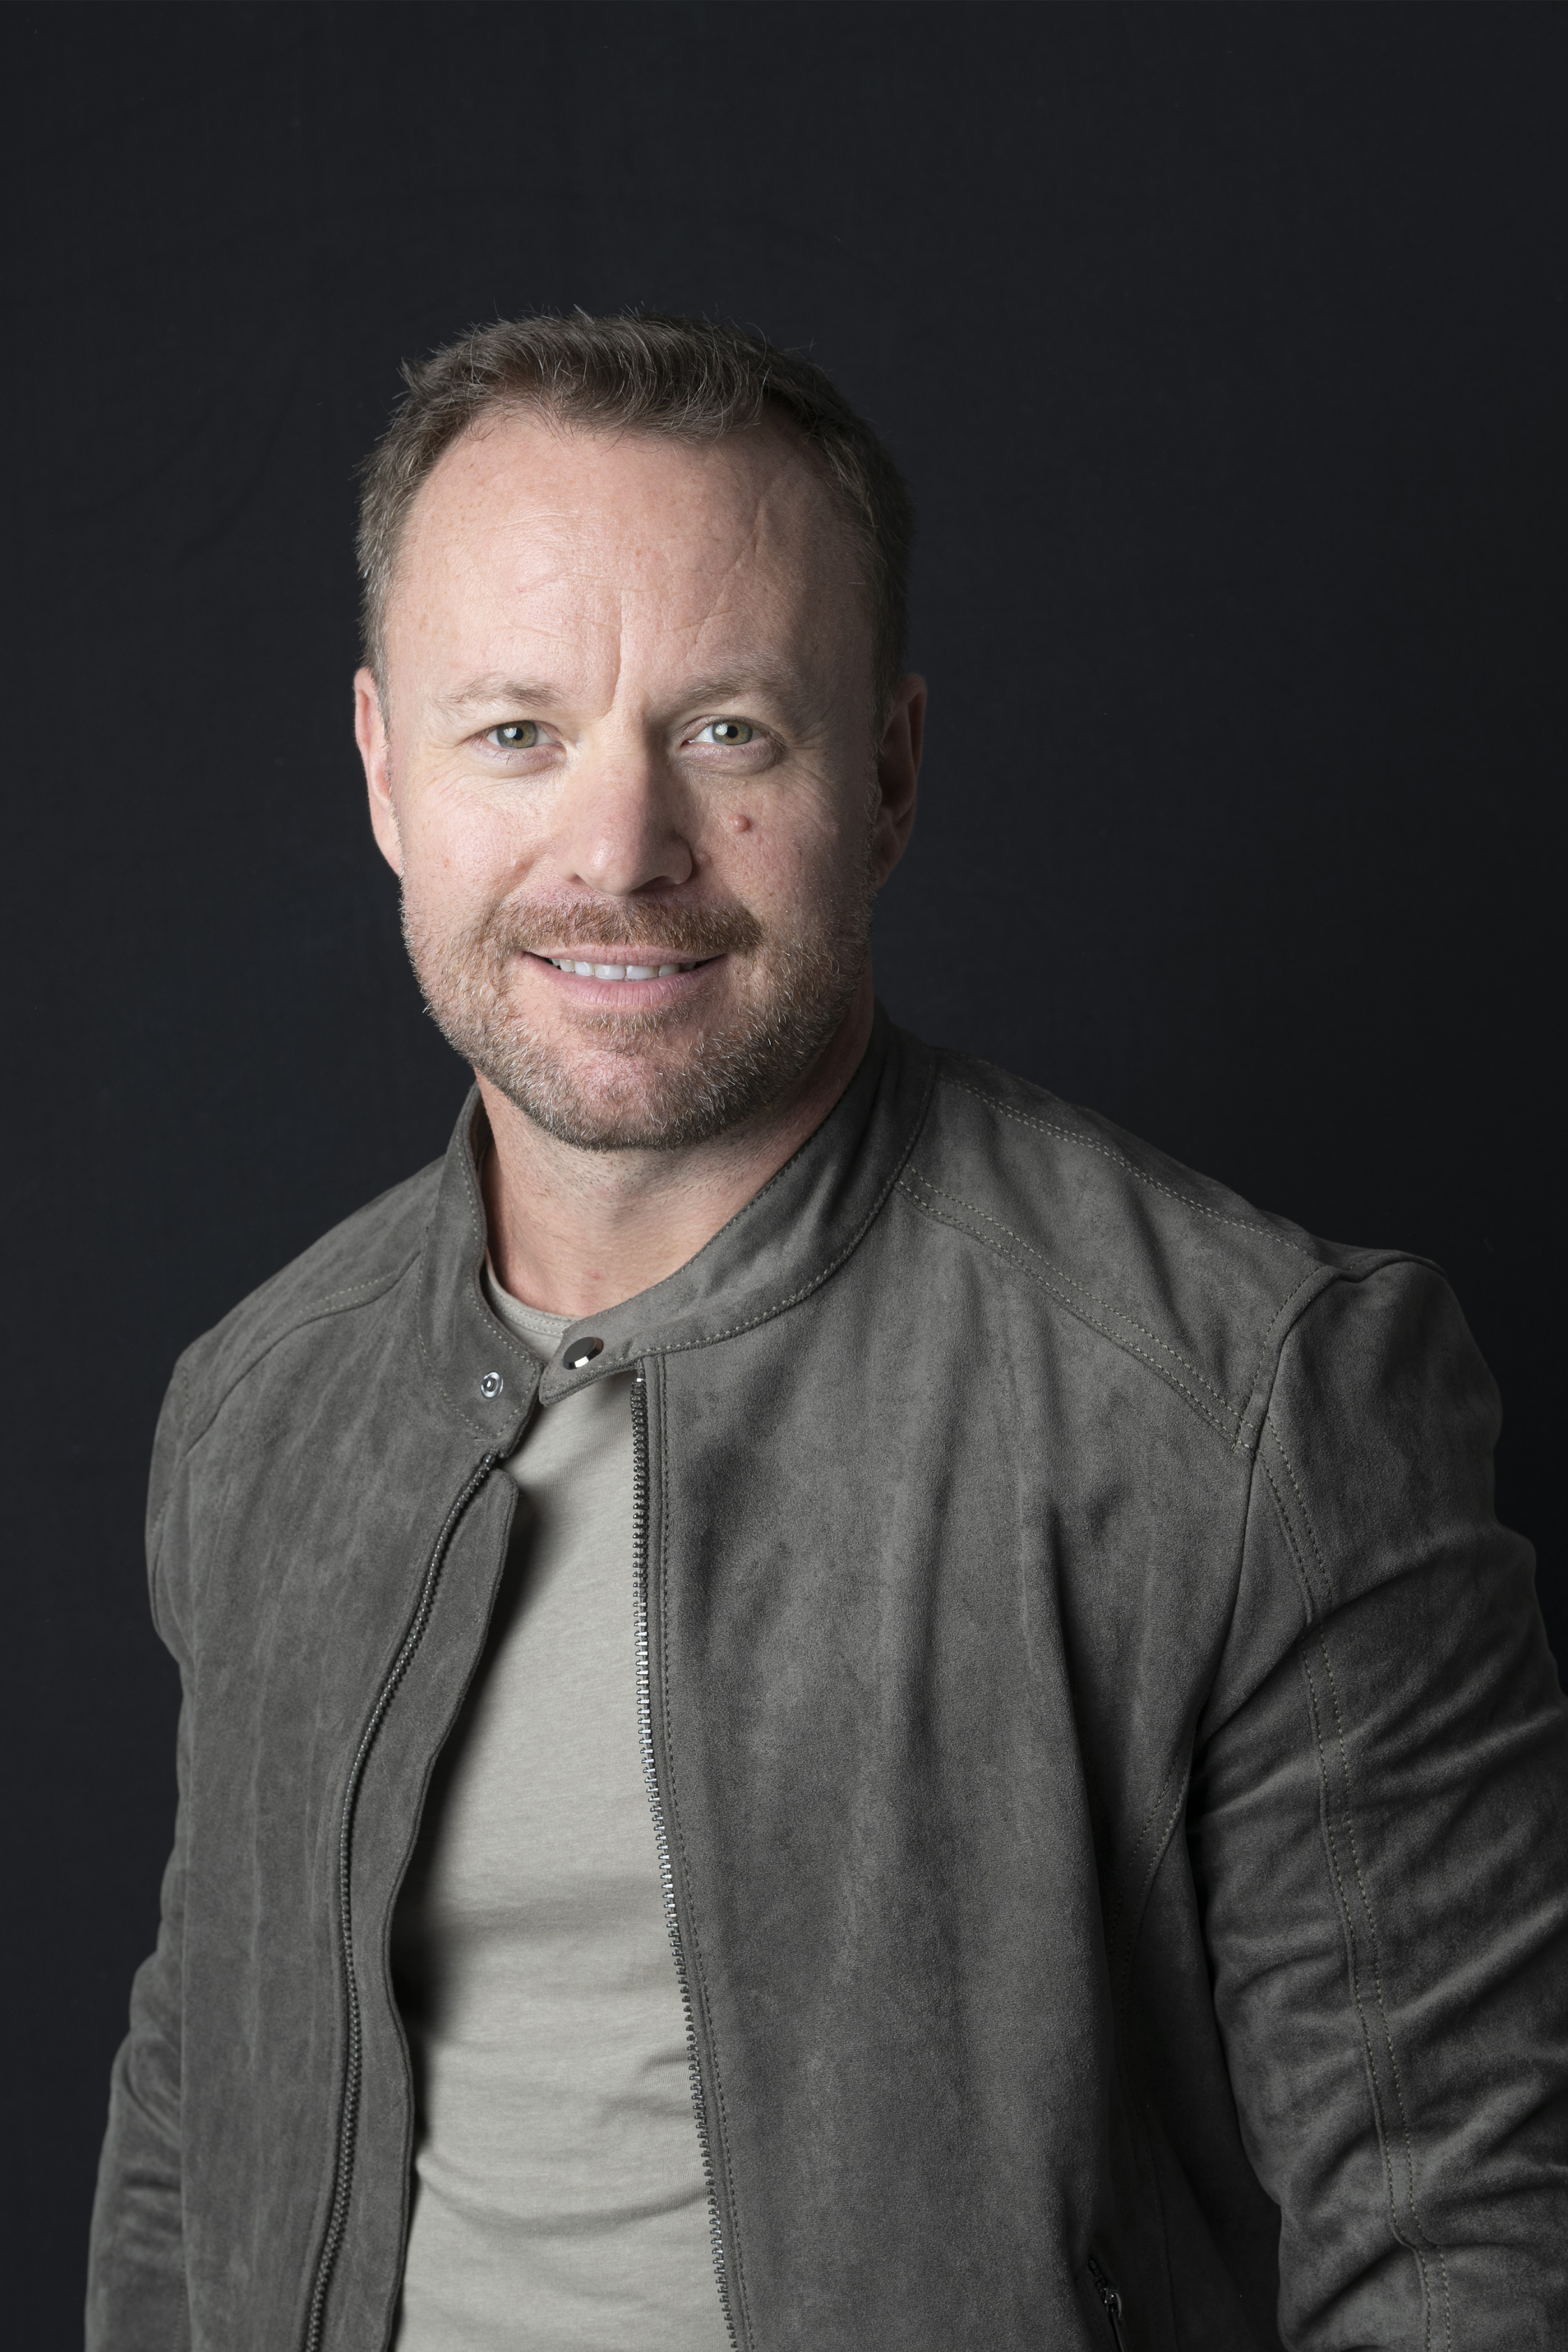 Kerwin Rae is Australia's leading business strategist and high-performance specialist. Having failed nearly every subject at school while growing up with ADHD, dyslexia, to then...